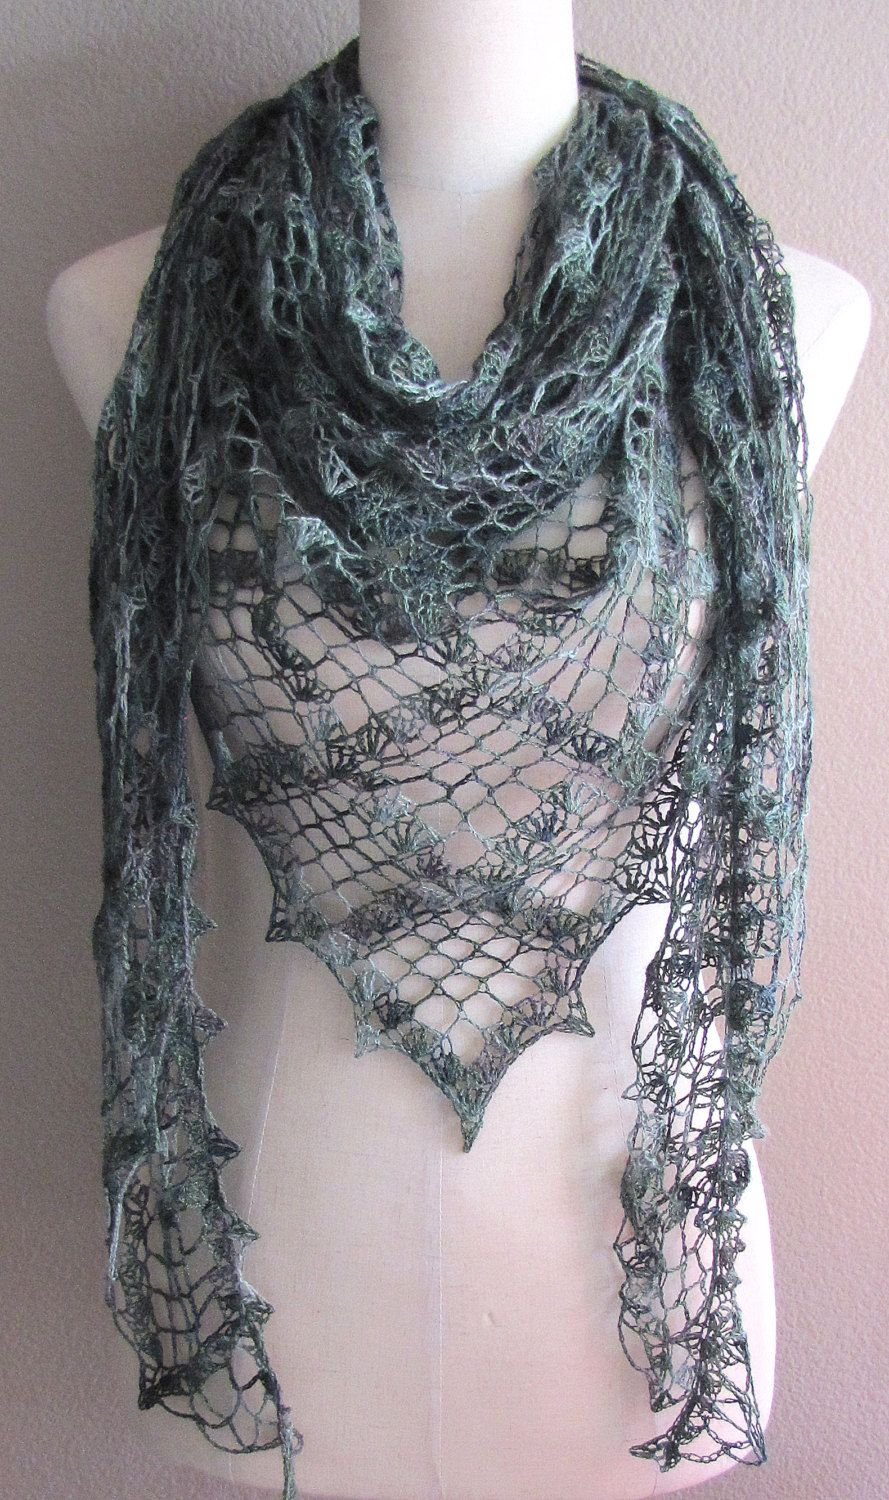 8792c55a80e5b Green And Brown Camouflauge Lace Crochet Shawl Baby Alpaca Silk Yarn  Handmade Versatile Lightweight Triangle Scarf Wrap by izaisenRework on Etsy